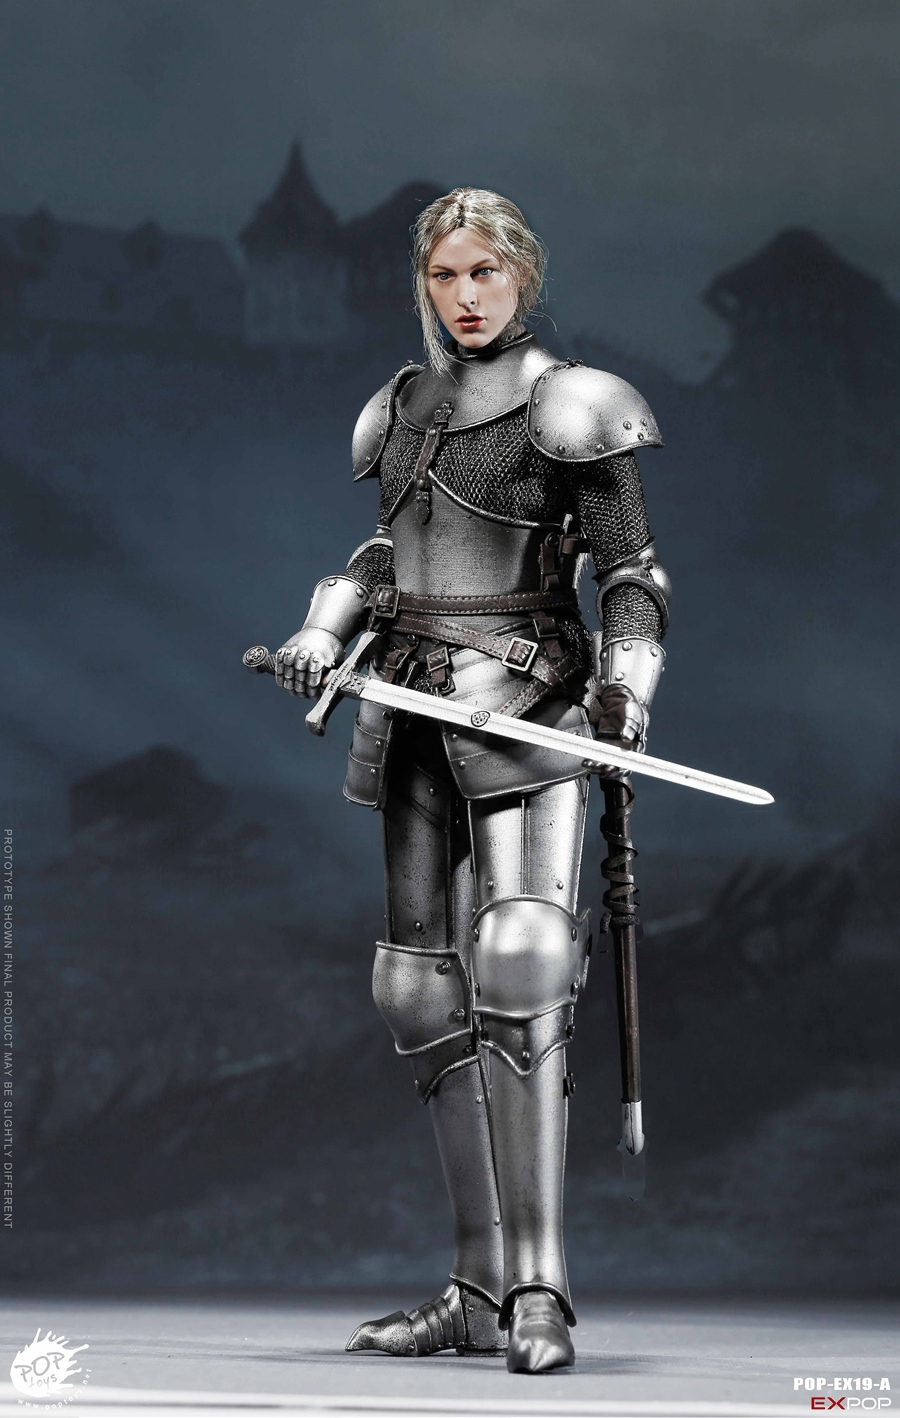 NEW PRODUCT: POPTOYS New Products: 1/6 St. Knights - Assault Edition & Triumph Edition & Iron Armor (POP-EX19 ABC) 150